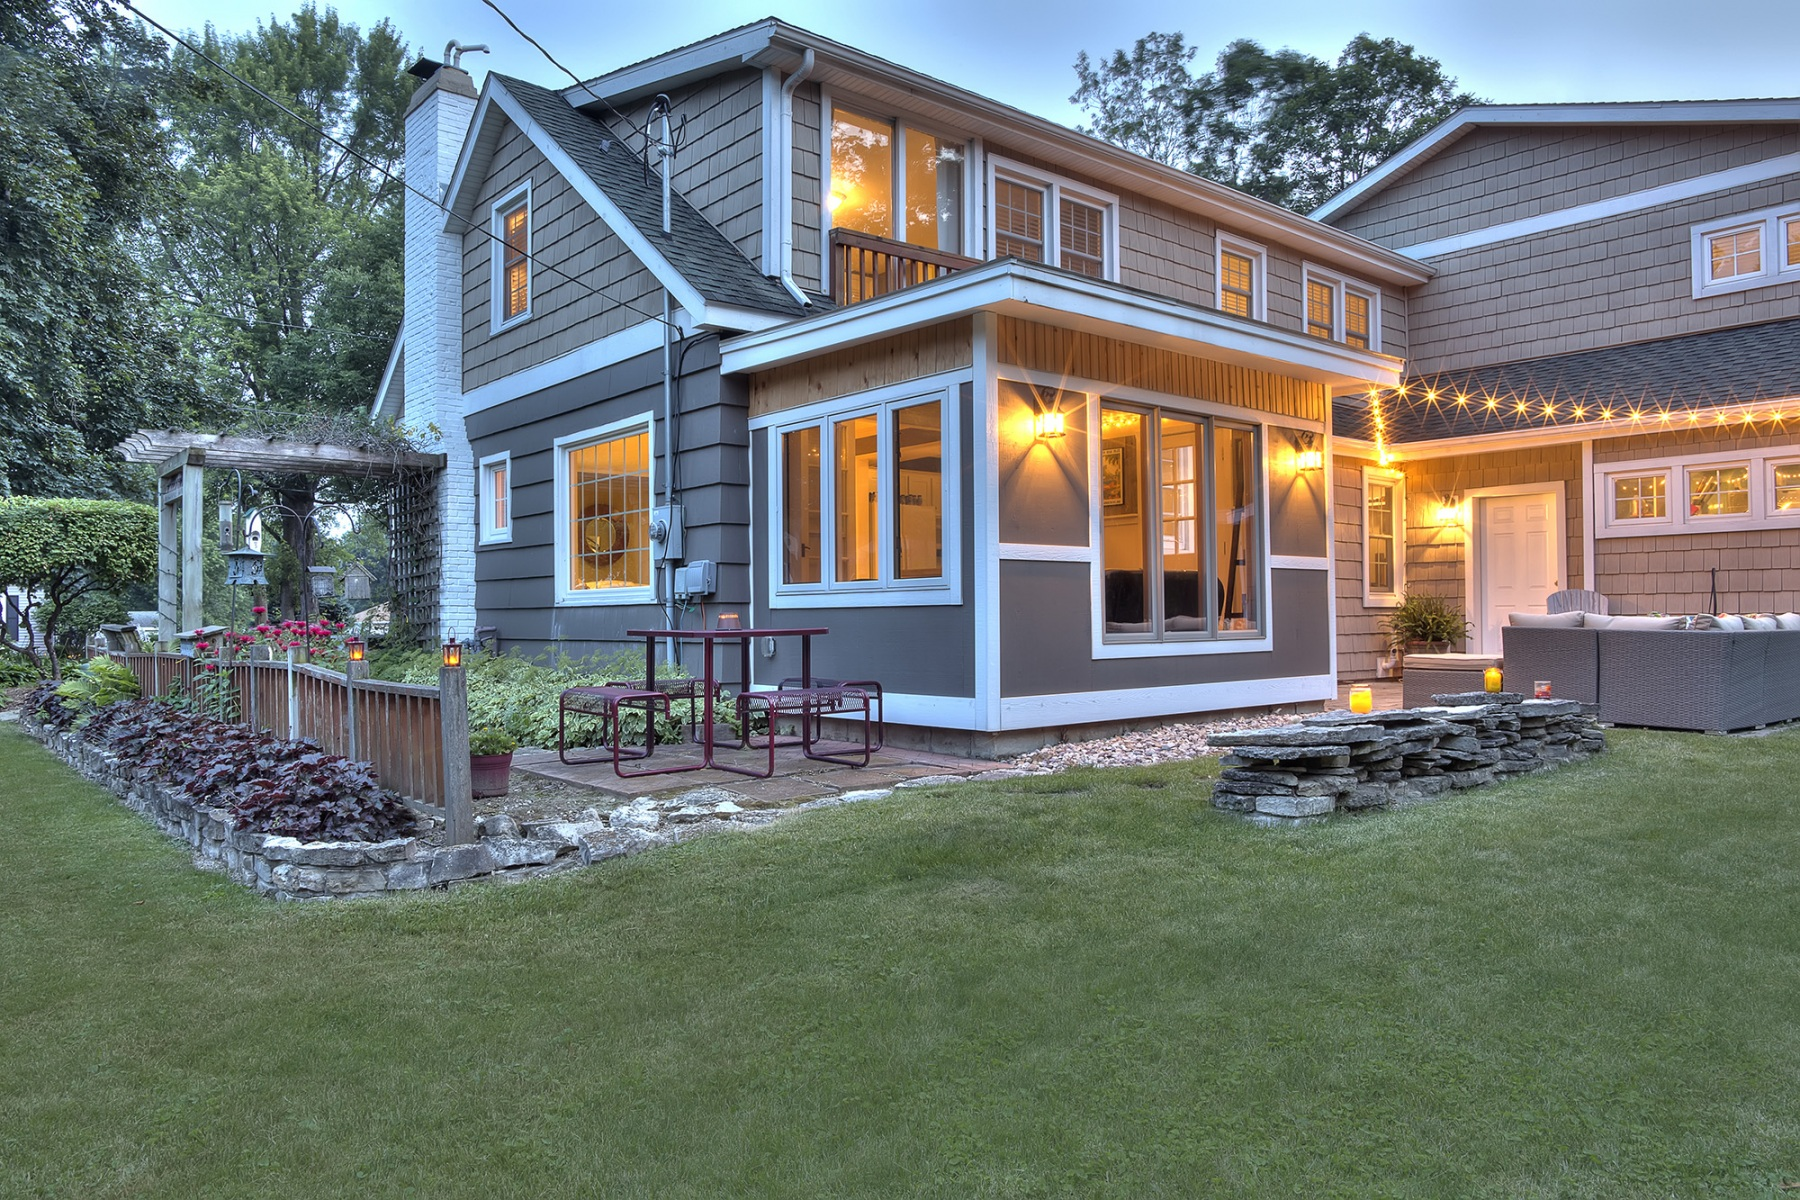 Beautiful restored Cape Cod style house exterior at dusk